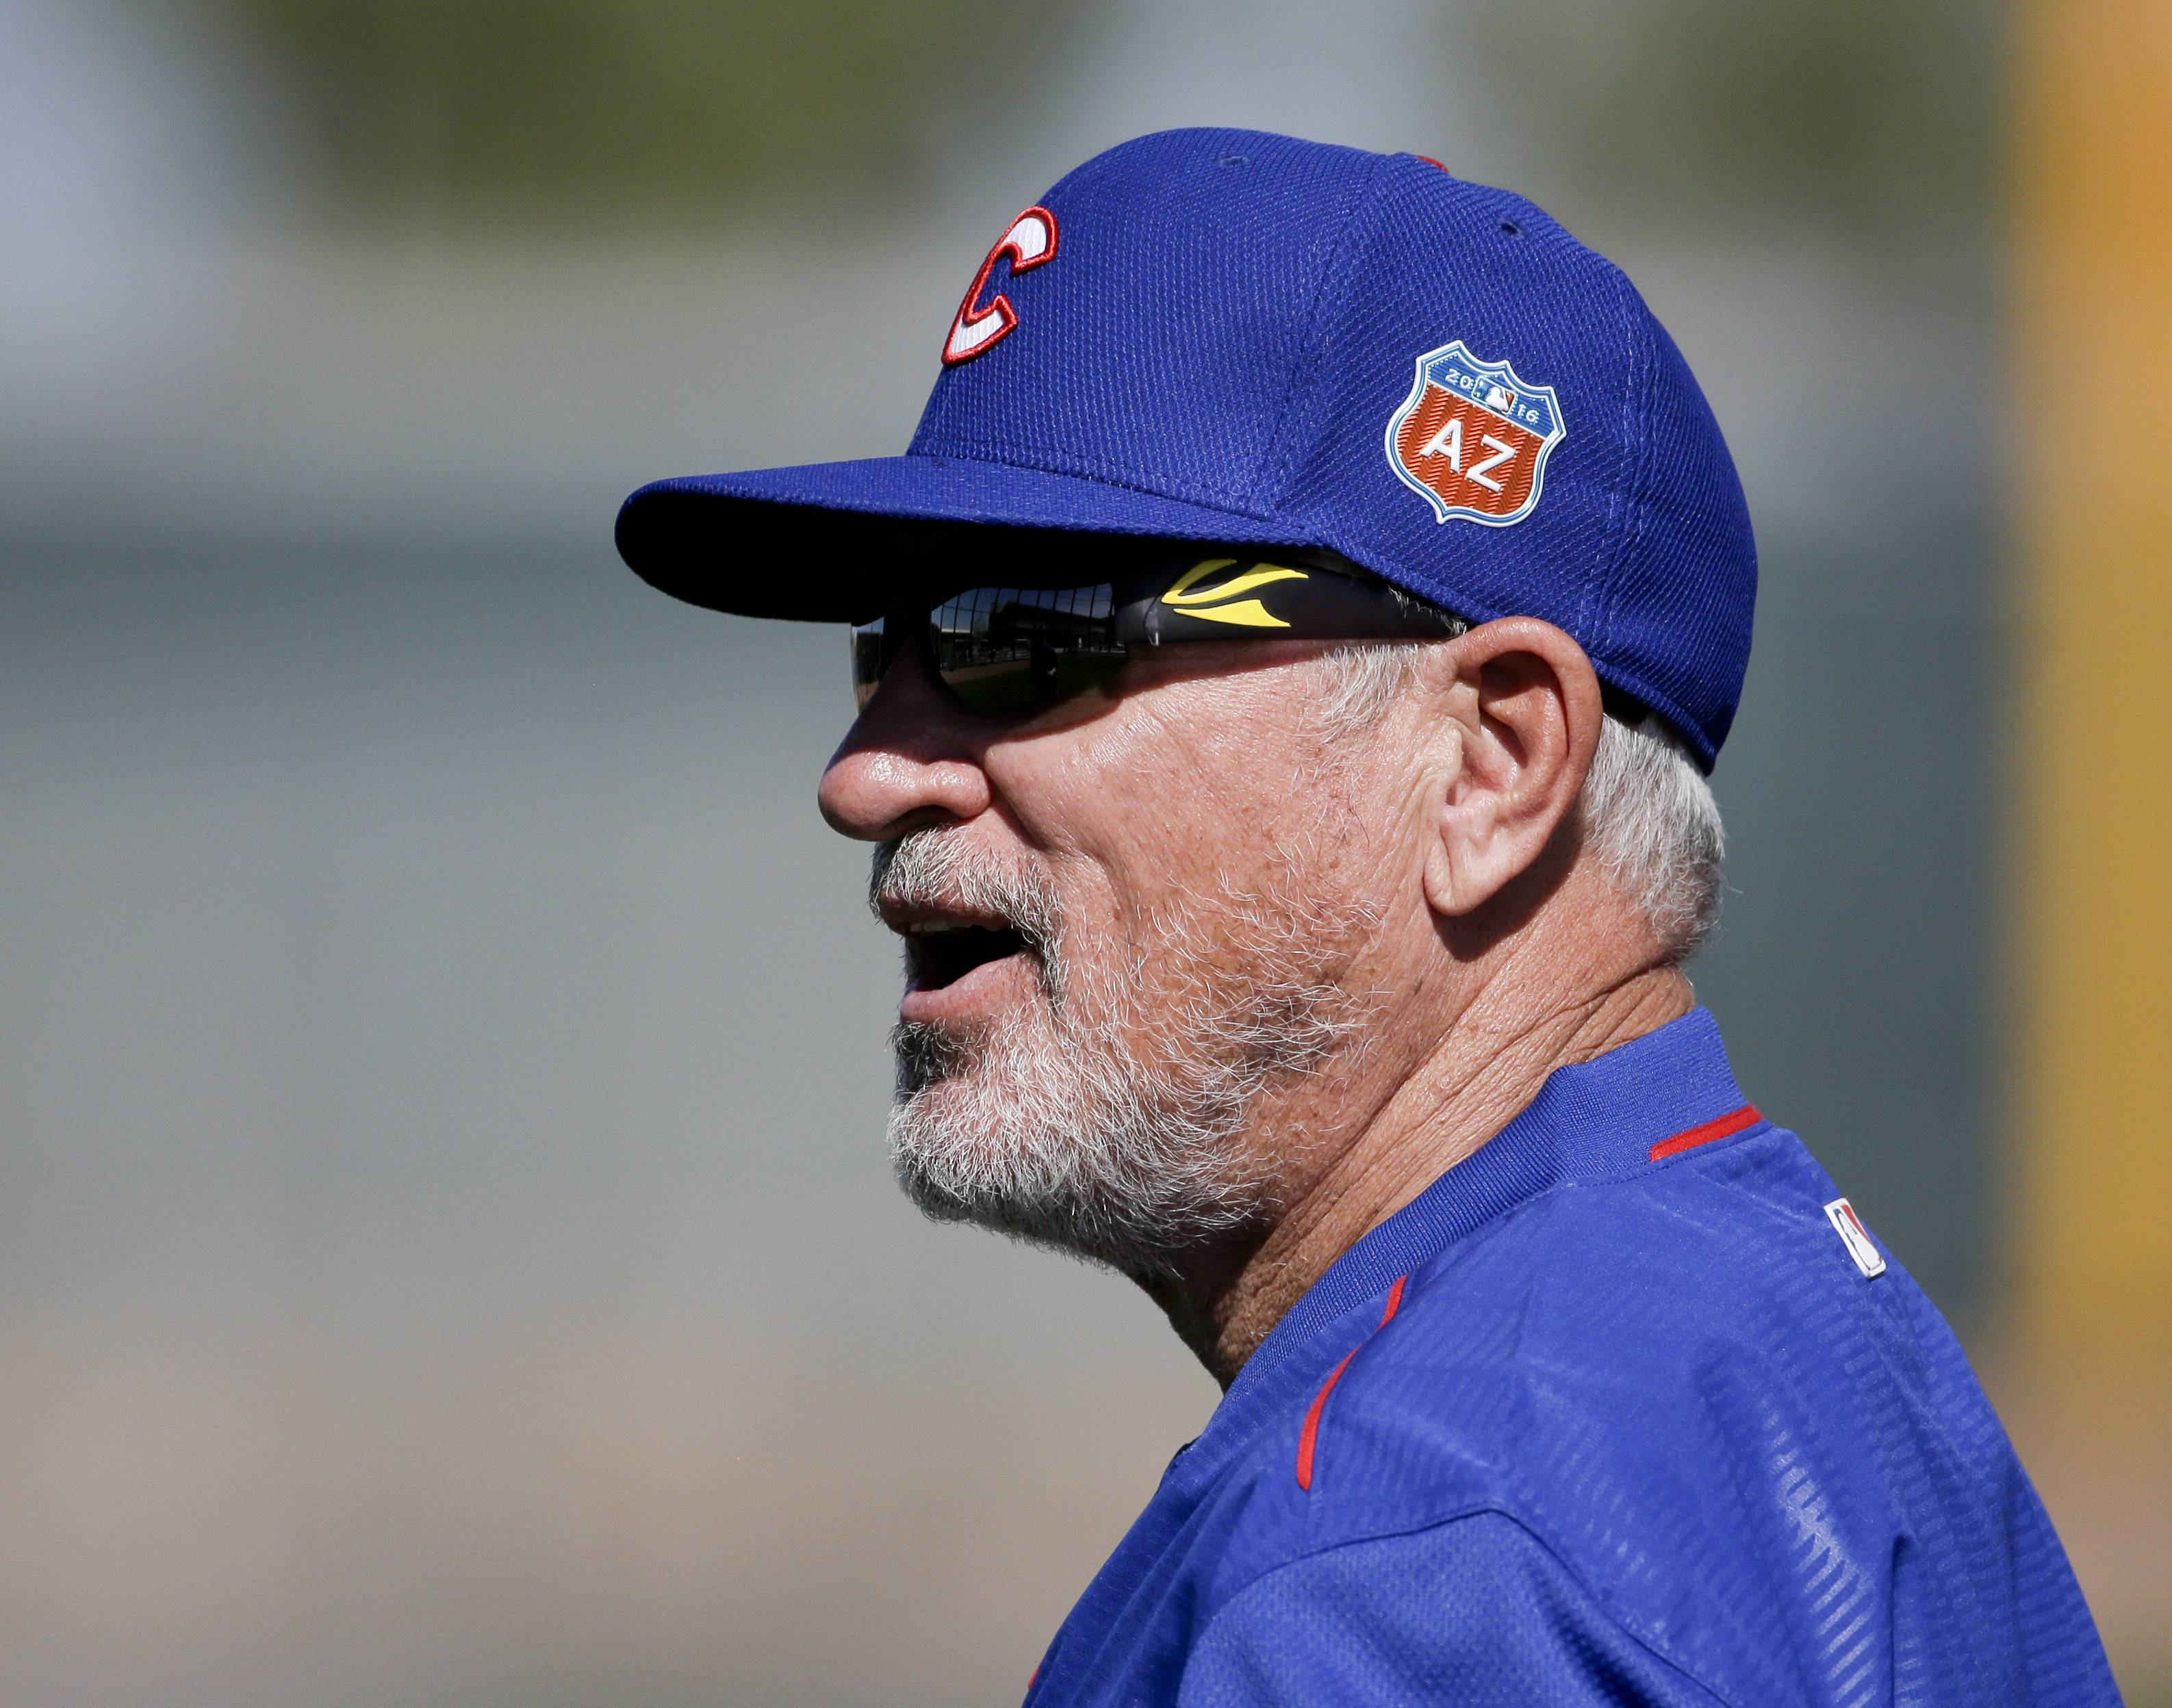 "Longtime Daily Herald Sports Editor Bob Frisk presents his annual New Year's offering of the best sports quotes of the year, including this gem by Cubs manager Joe Maddon on the Cubs playing their first scheduled Friday night game during a regular season: ""They invented lights for a reason. God invented lights for night baseball. That was part of his overarching plan."""